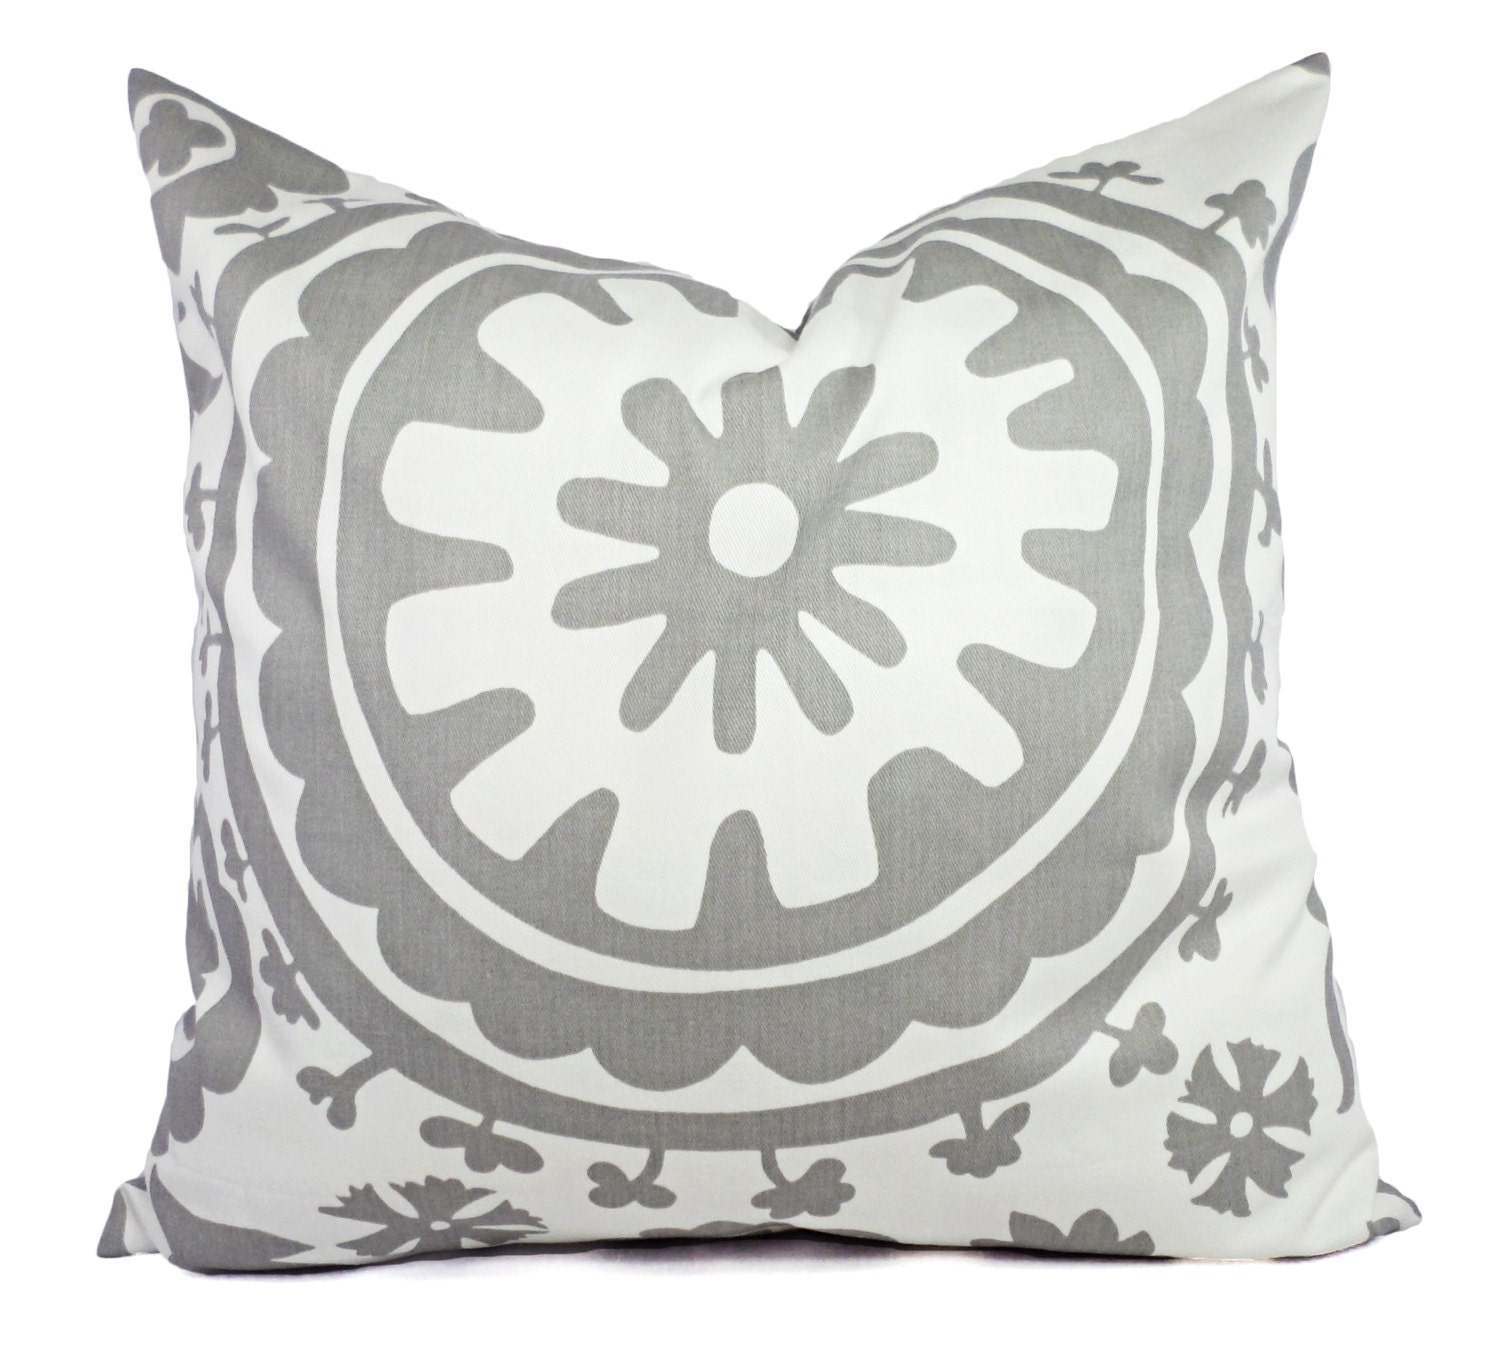 You searched for: gray pillow cover! Etsy is the home to thousands of handmade, vintage, and one-of-a-kind products and gifts related to your search. No matter what you're looking for or where you are in the world, our global marketplace of sellers can help you find unique and affordable options. Let's get started!